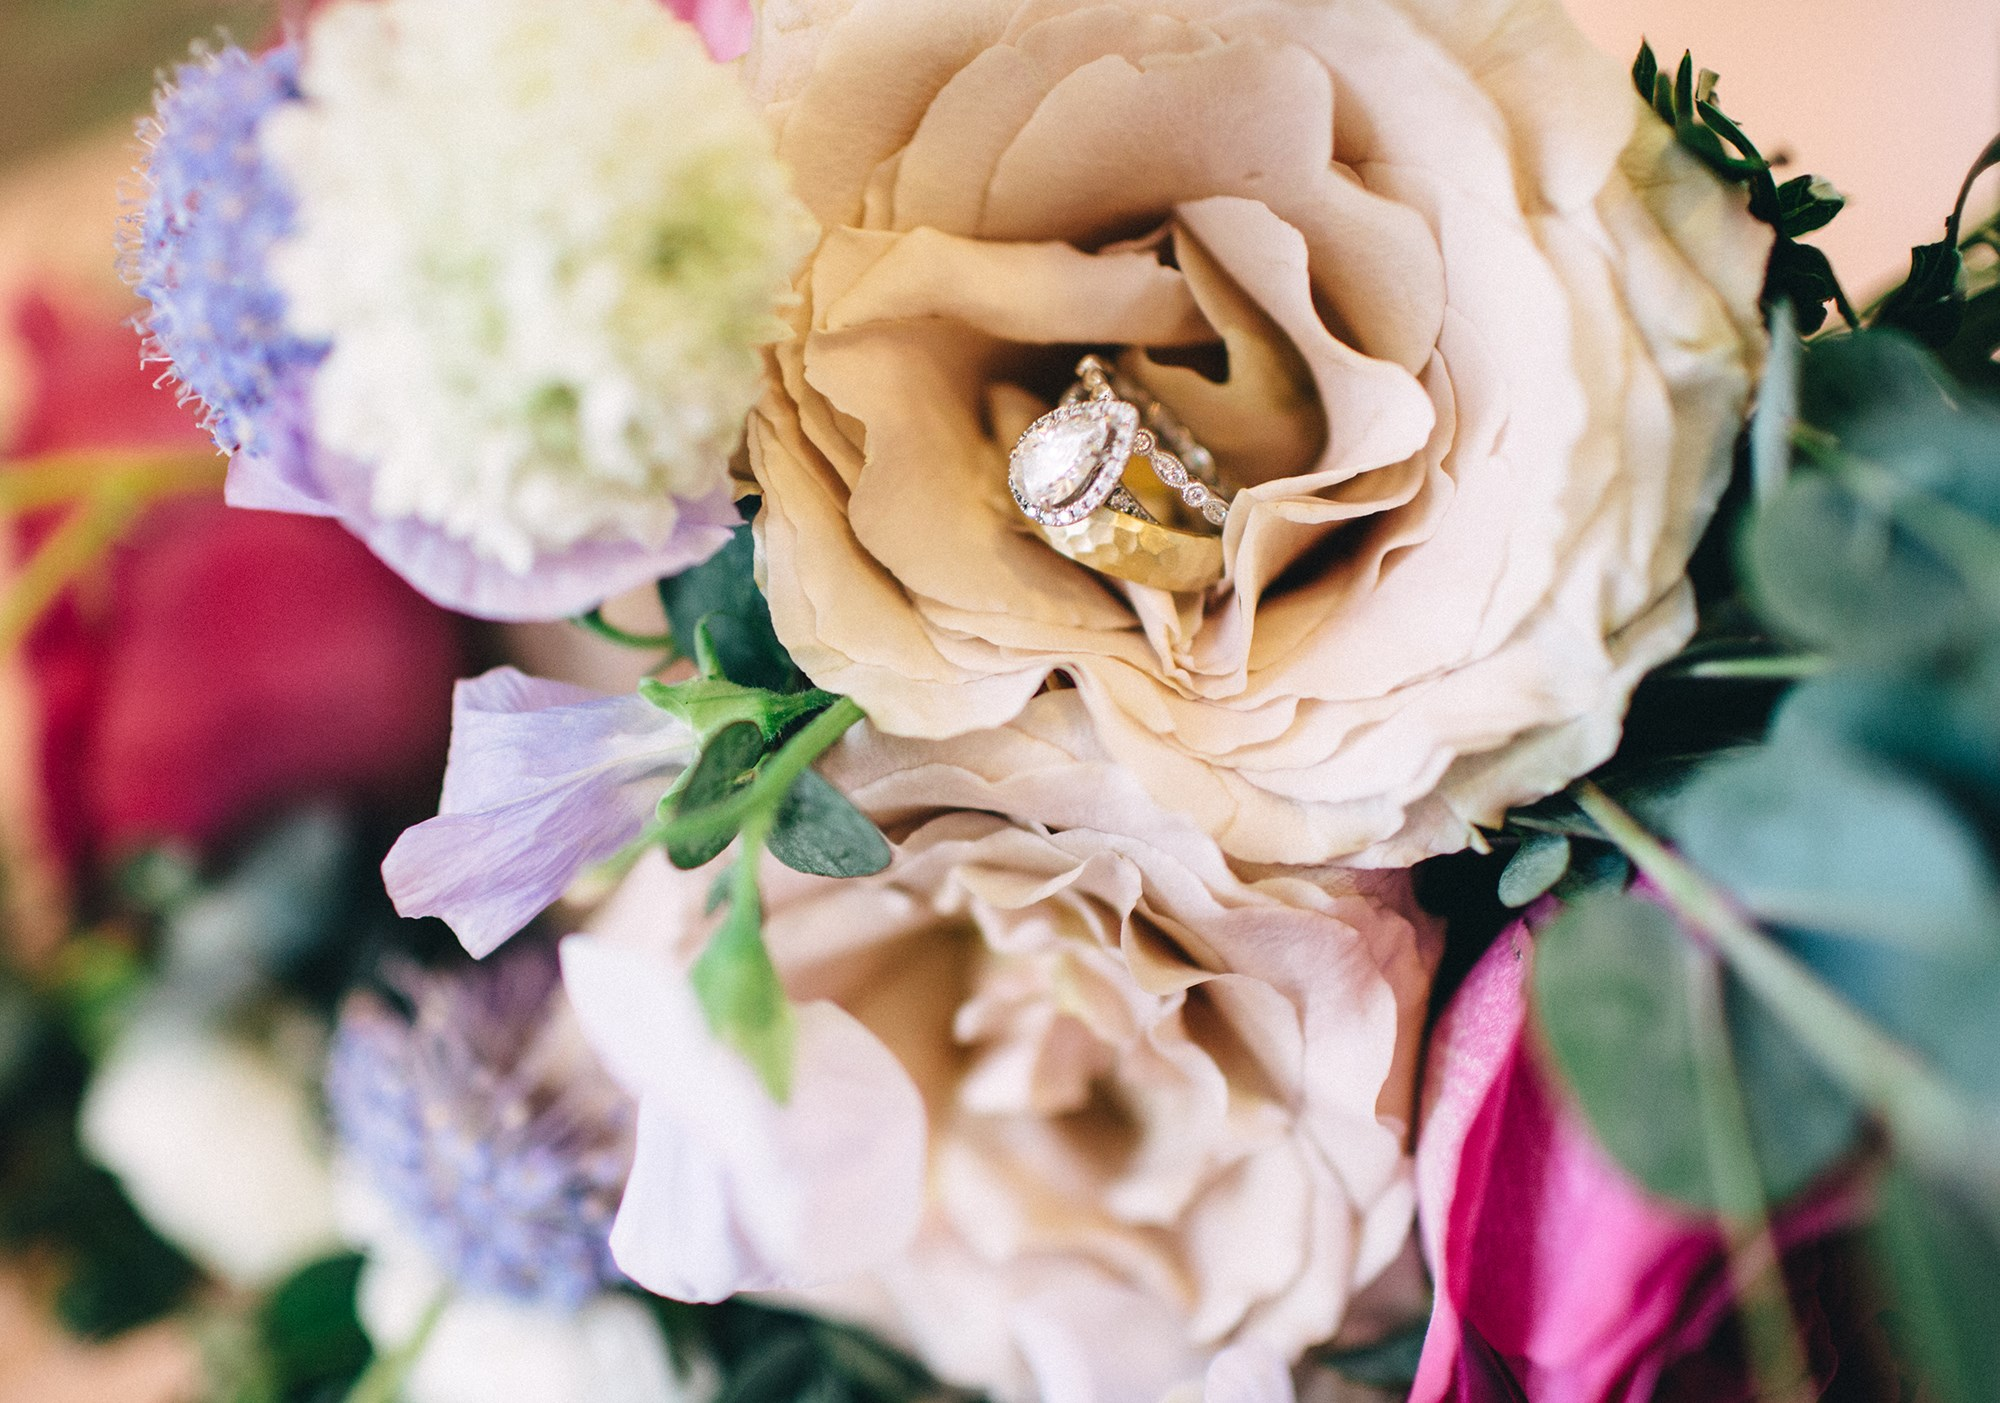 pear shaped engagement ring on bouquet